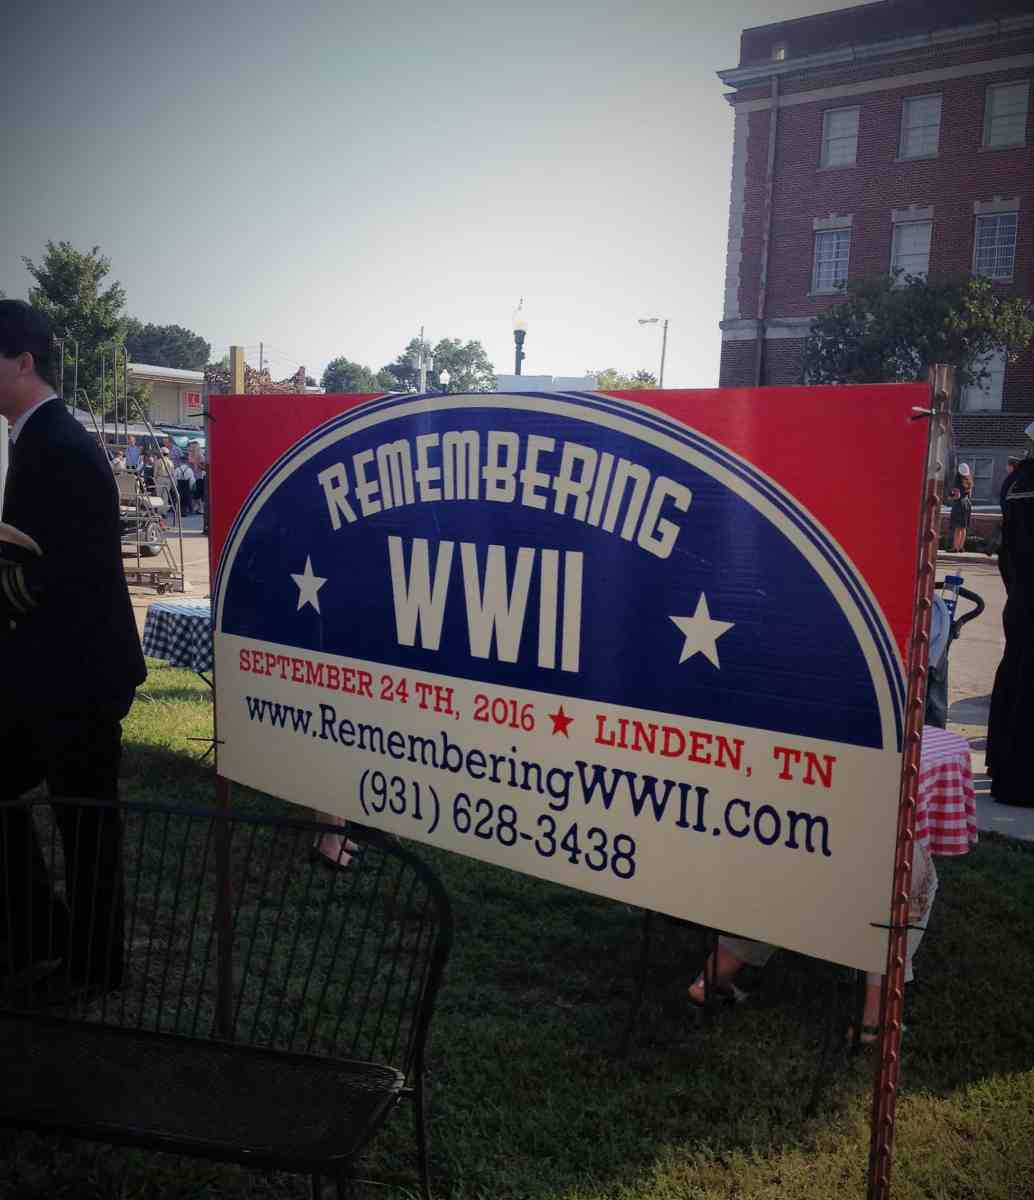 Remembering WWII in Linden, Tennessee